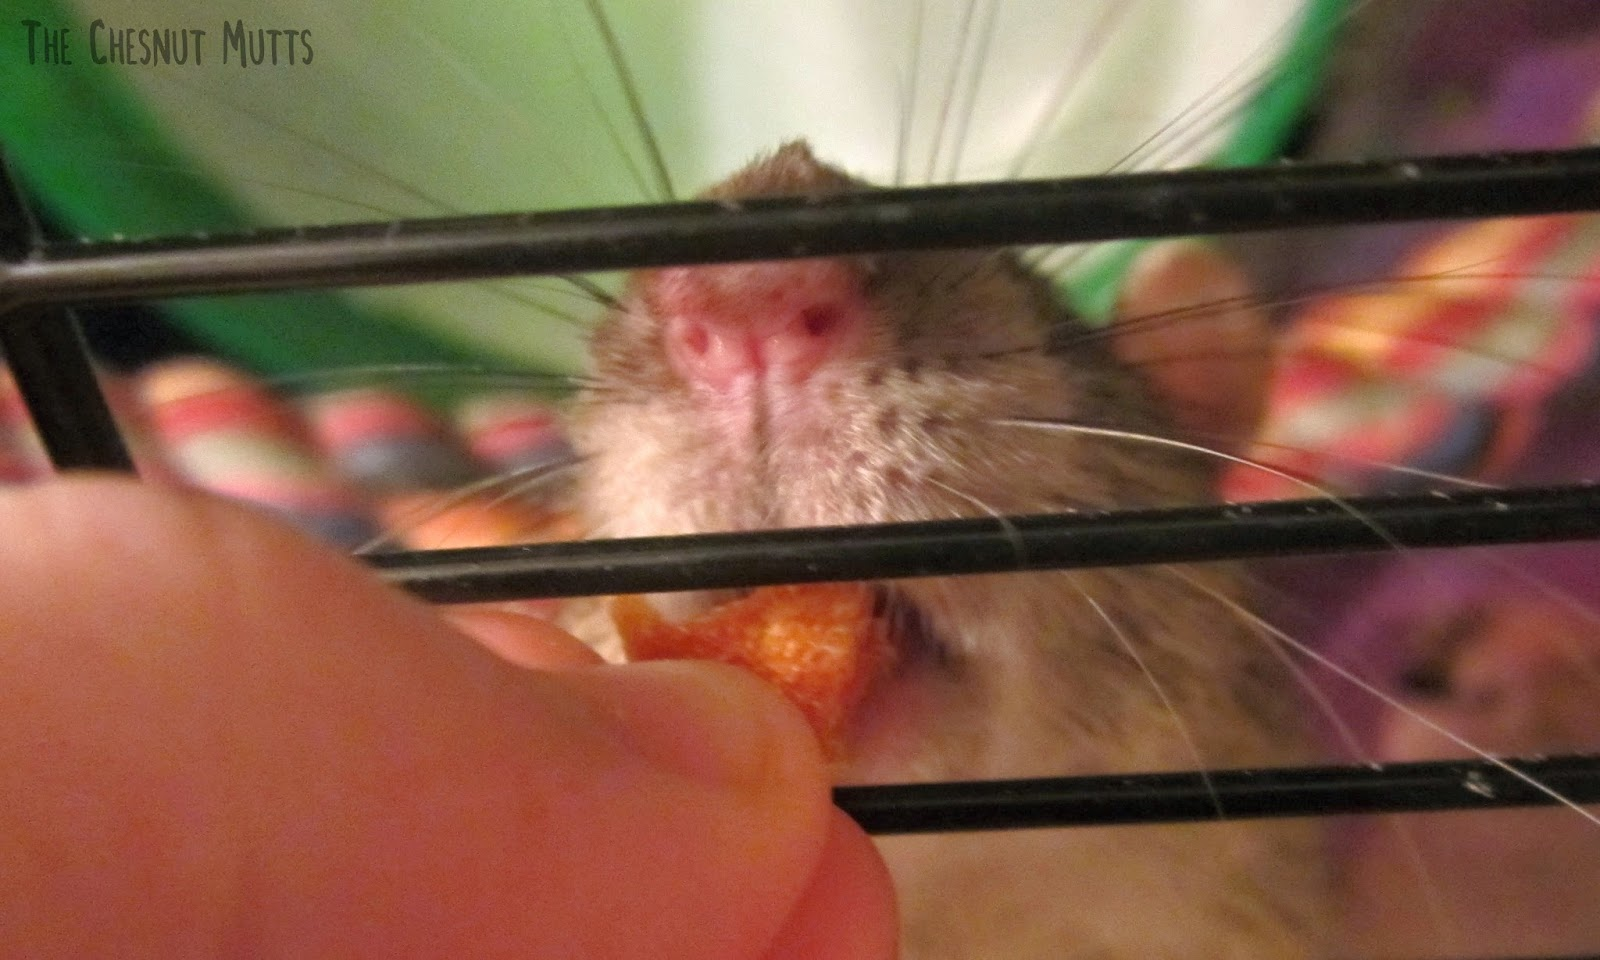 Delmar the rat enjoys some jerky